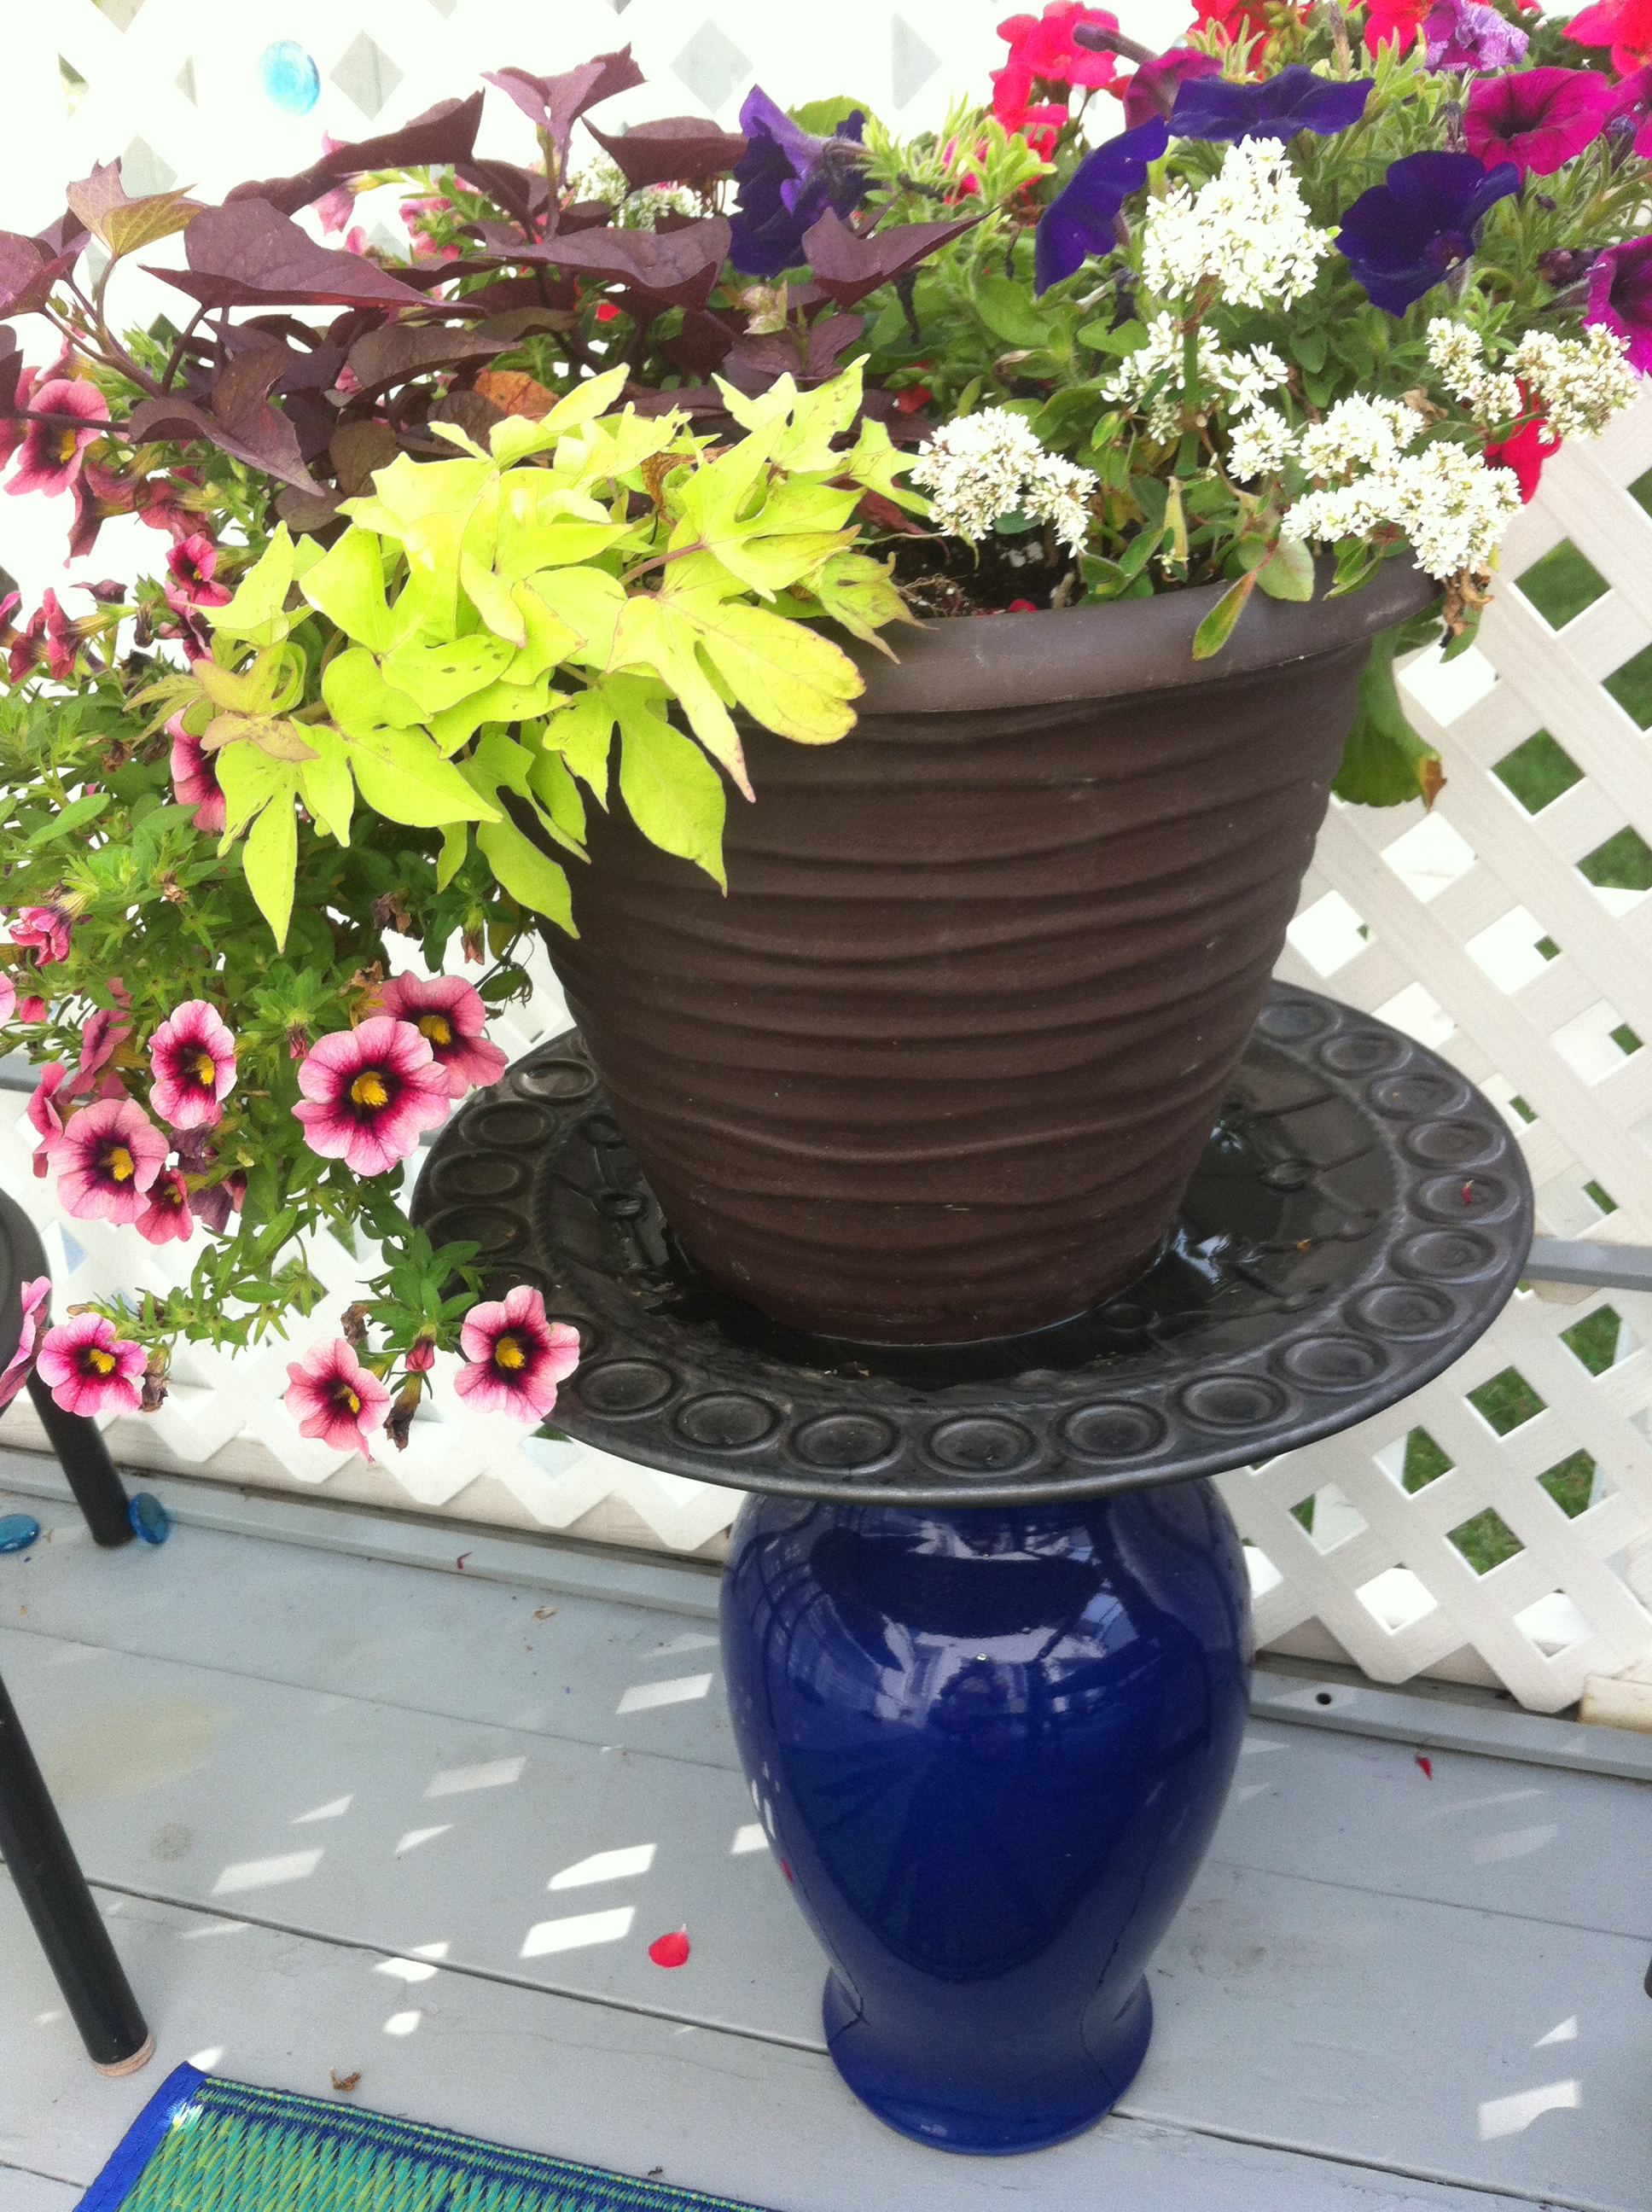 Up-cycled plant stand from vase and platter 8 DIY Patio Accents #trashtotreasure #patio #diy #yard #garden #up-cycle #re-purpose #patio_table #plant_stand #bird_bath #herb_garden